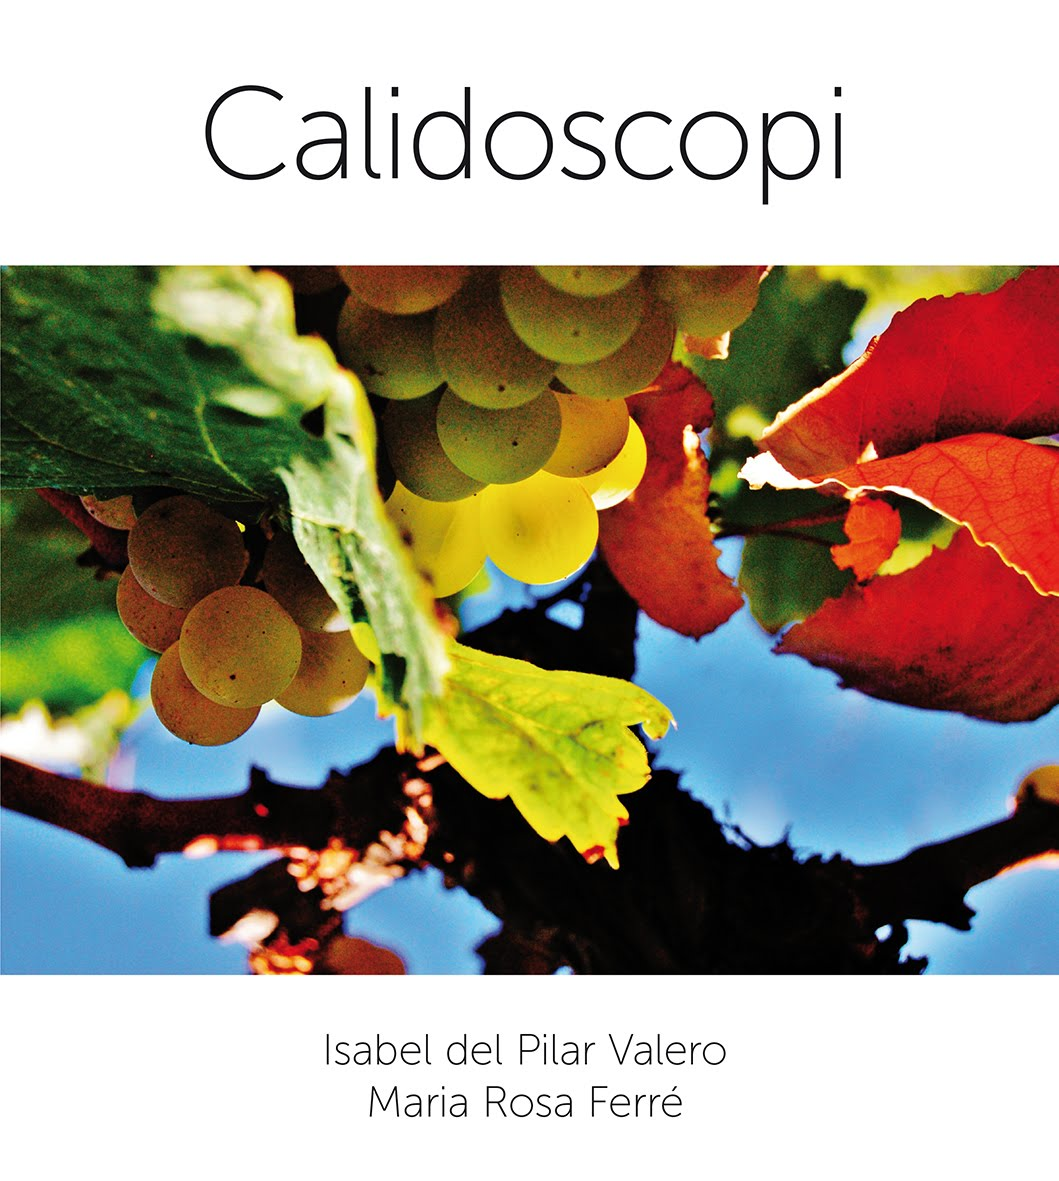 Calidoscopi